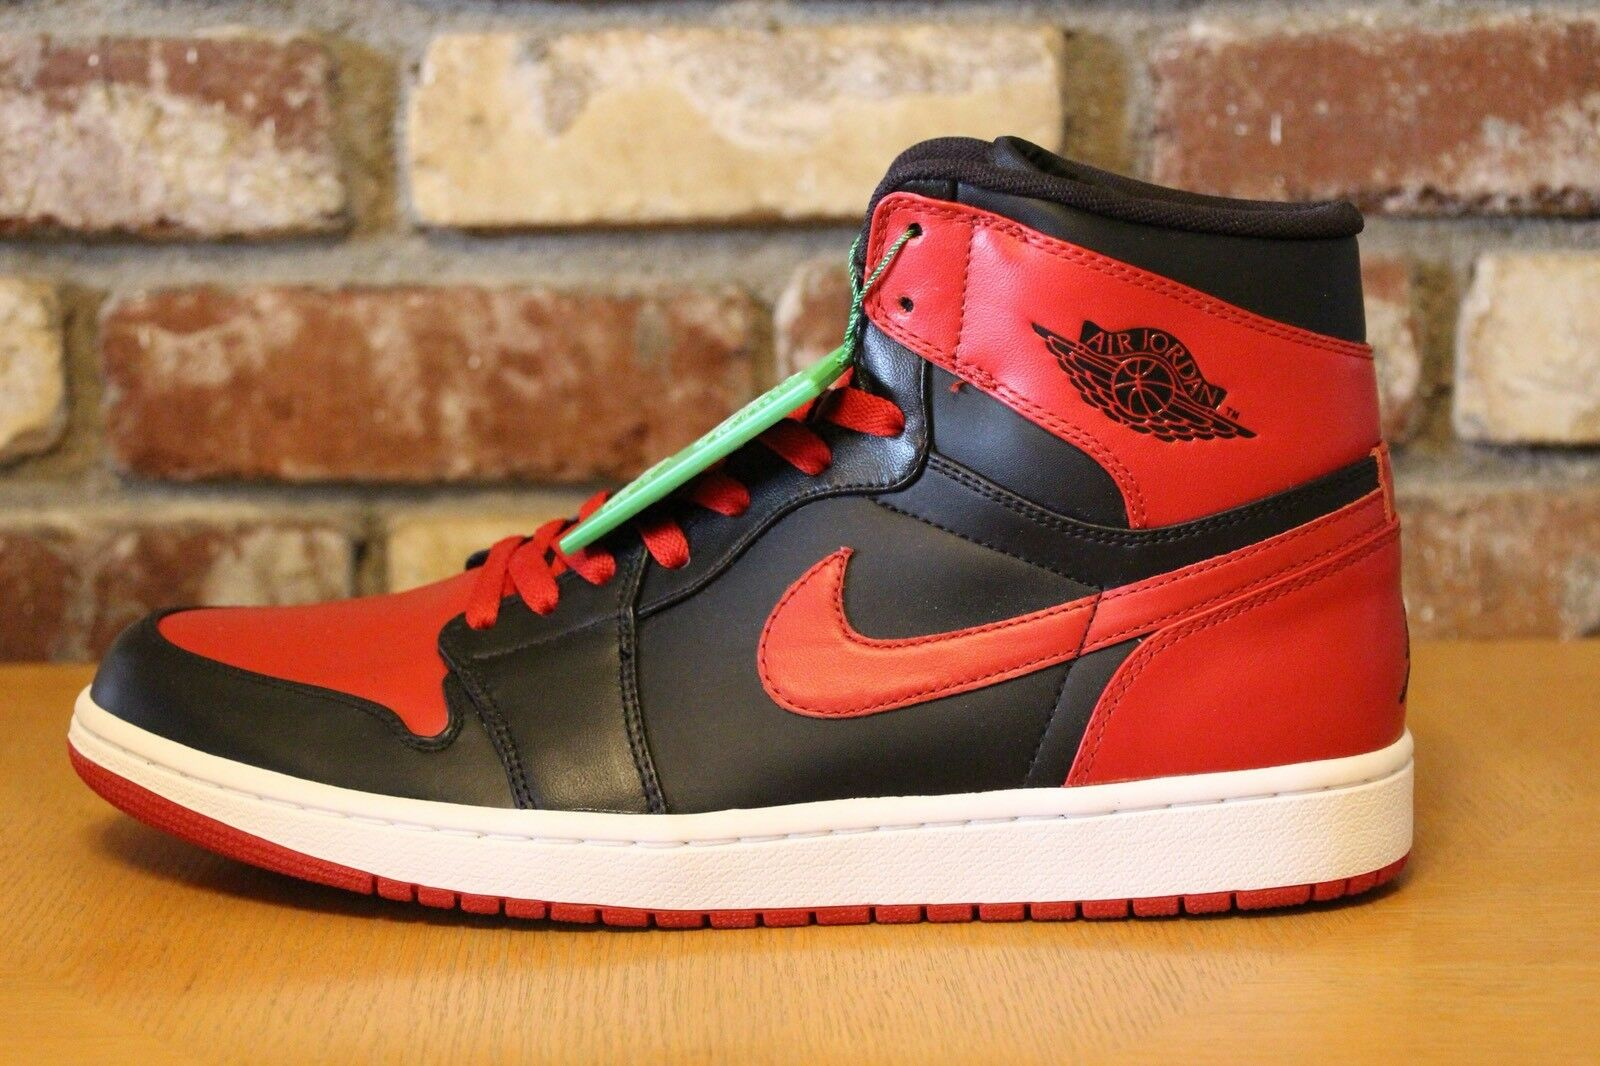 Nike Nike Nike Air Jordan 1 DMP Retro High Bred Red Black 2009 DS Men's Size 11.5 and 12 417e60